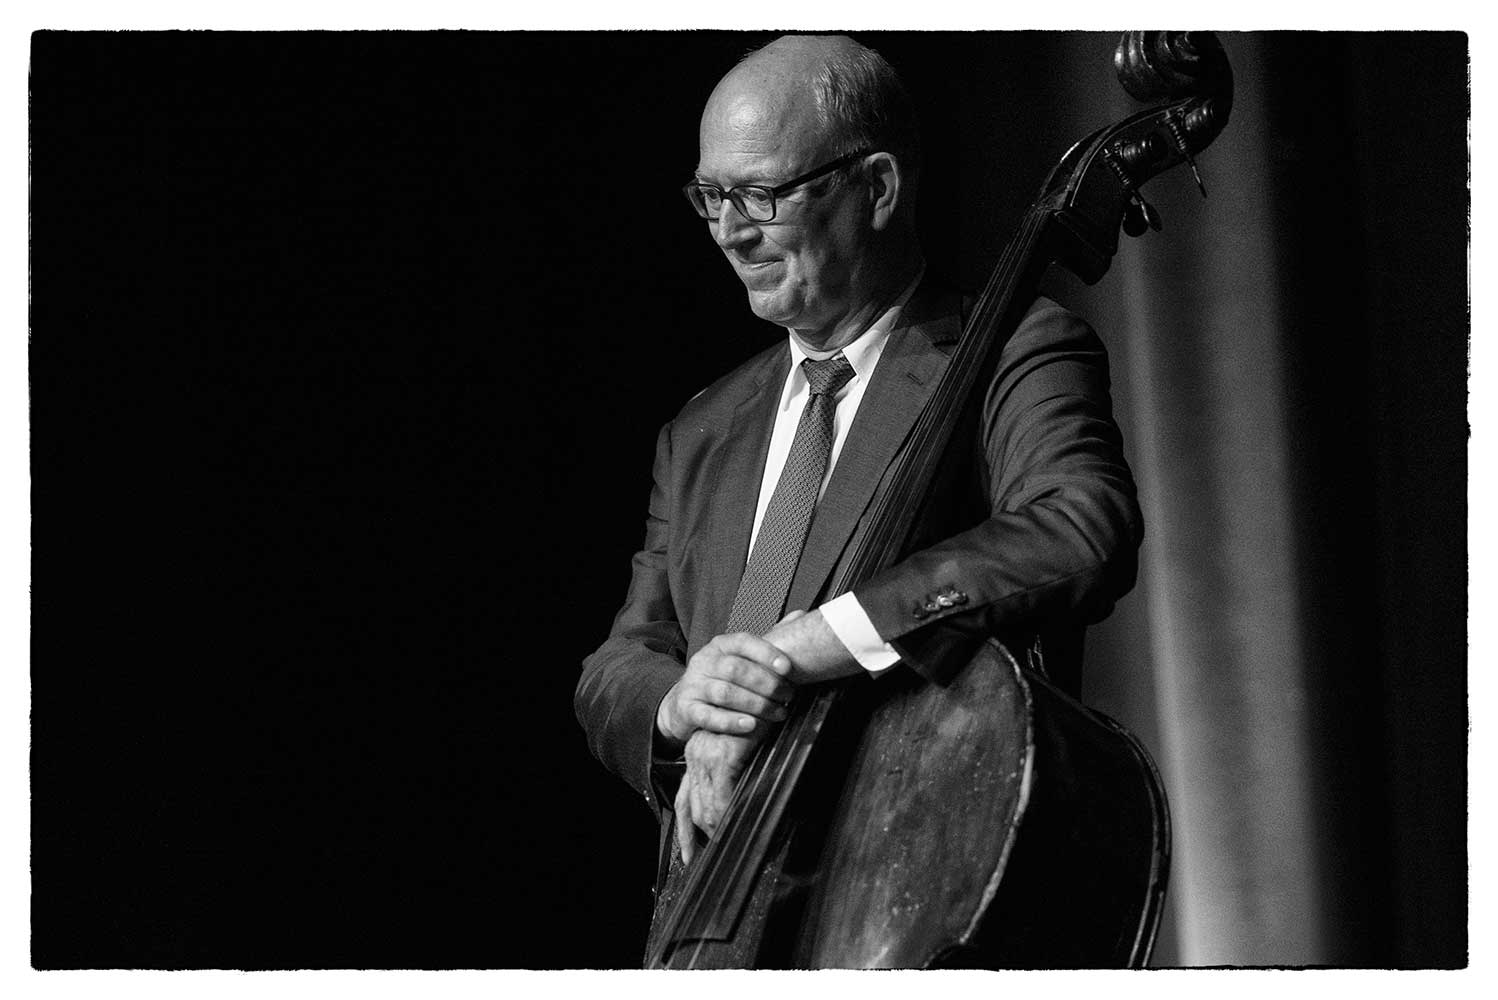 Bassist with the Dutch College Swing Band, peforming at the Theatre By The Lake during the Keswick Jazz and Blues Festival, 2017.